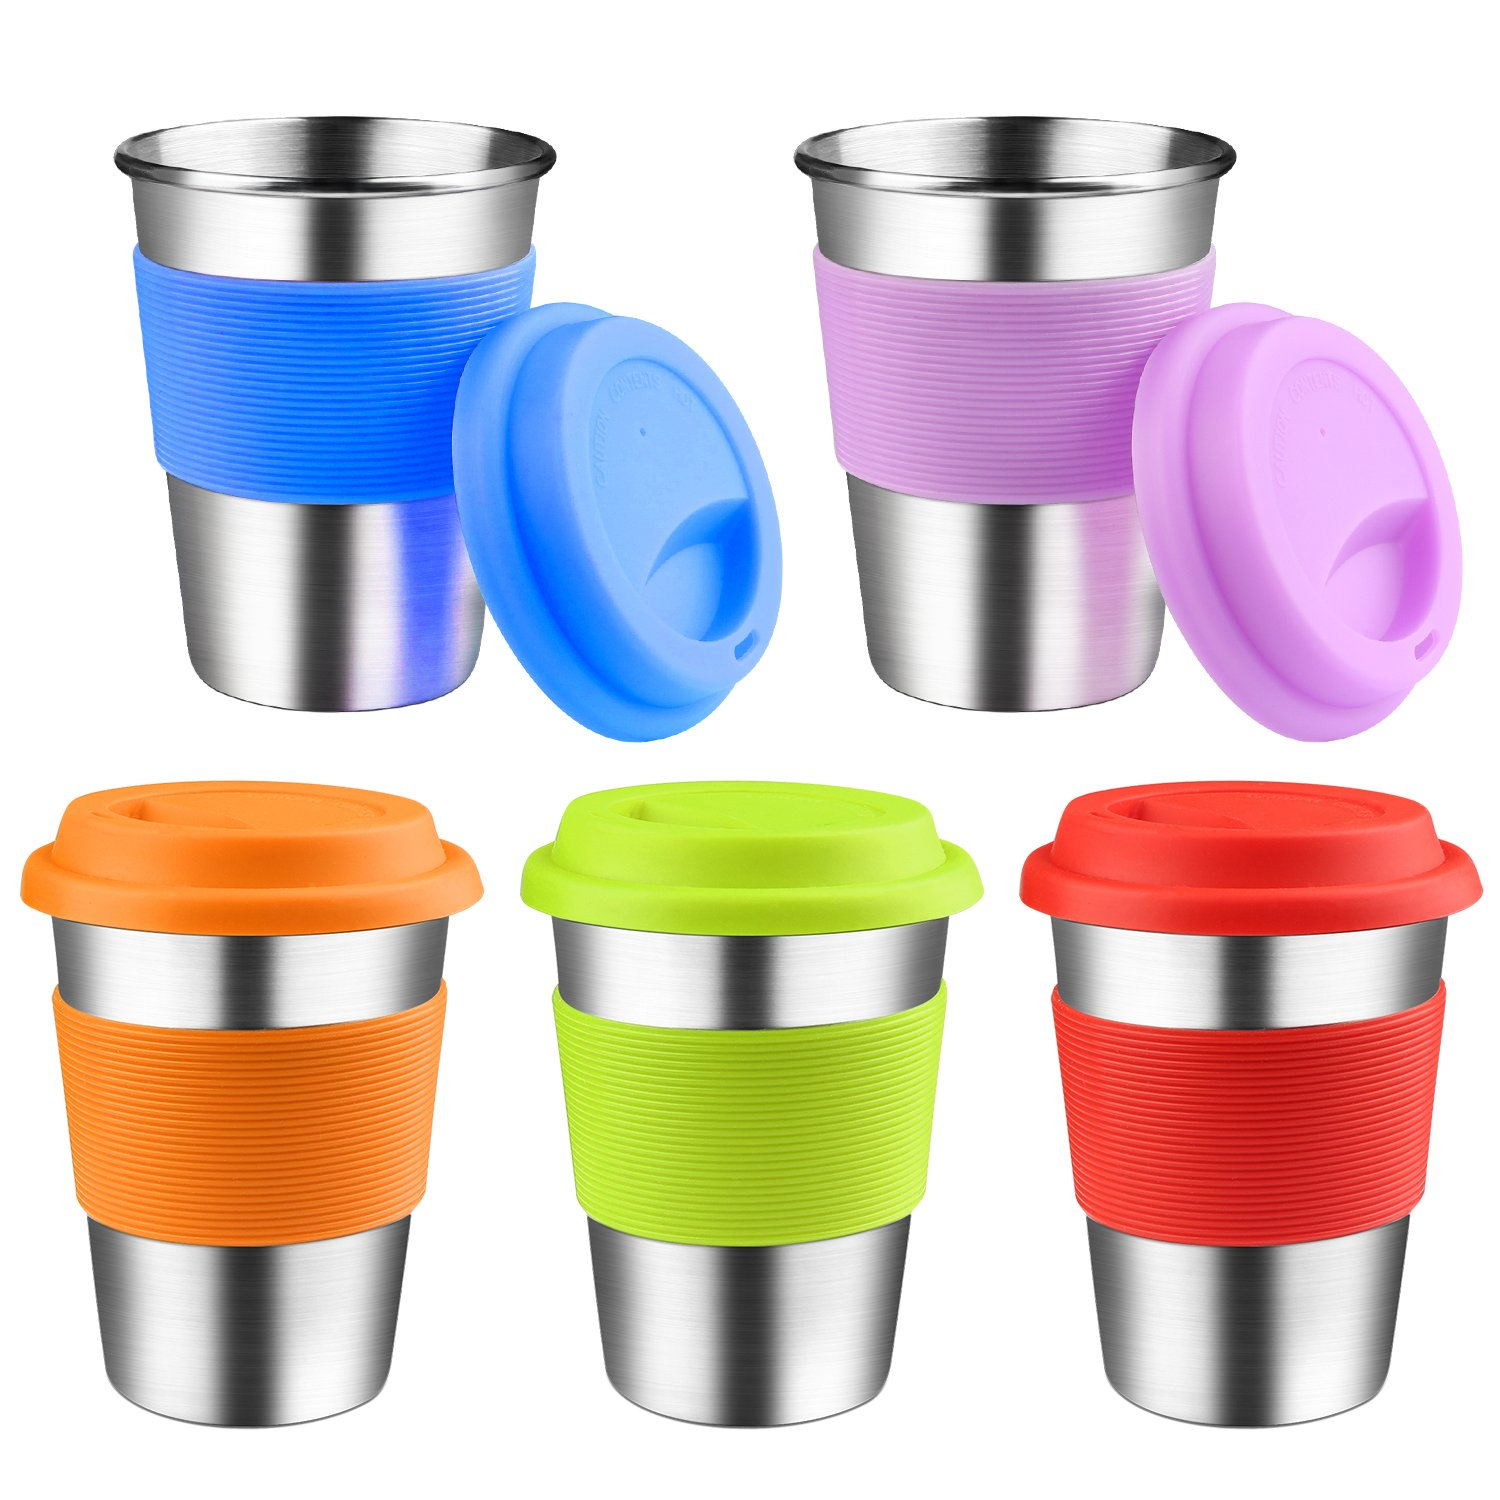 Kids Stainless Steel Cups With Silicone Lids & Sleeves, Kereda 5 Pack 11 3/4 oz. Drinking Tumblers Eco-Friendly BPA-Free for Adults, Children and Toddlers by KEREDA